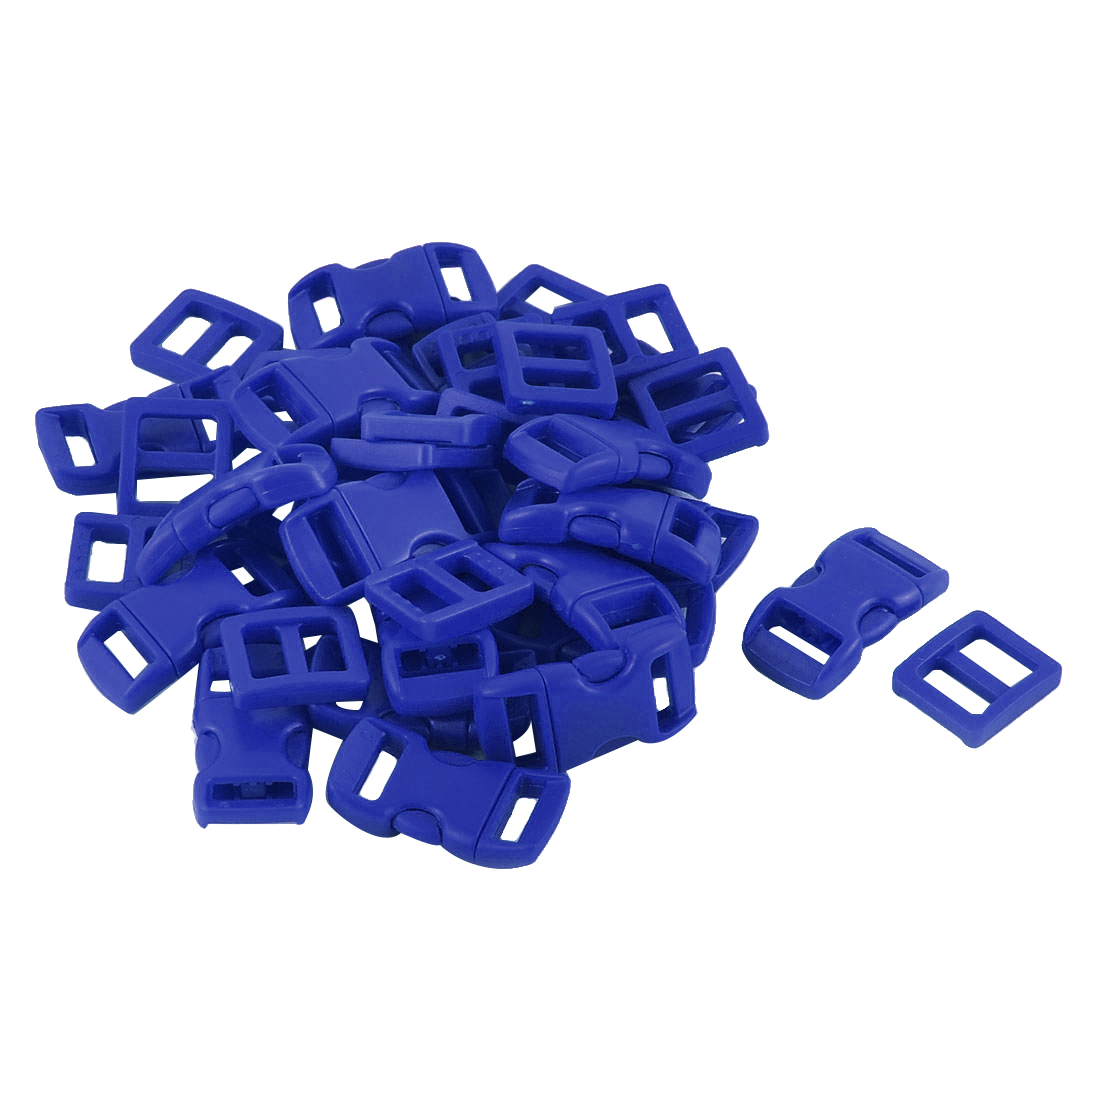 Suitcase Backpack Strap Plastic Side Quick Release Buckle Tri Glide Buckles Royal Blue 40 in 1